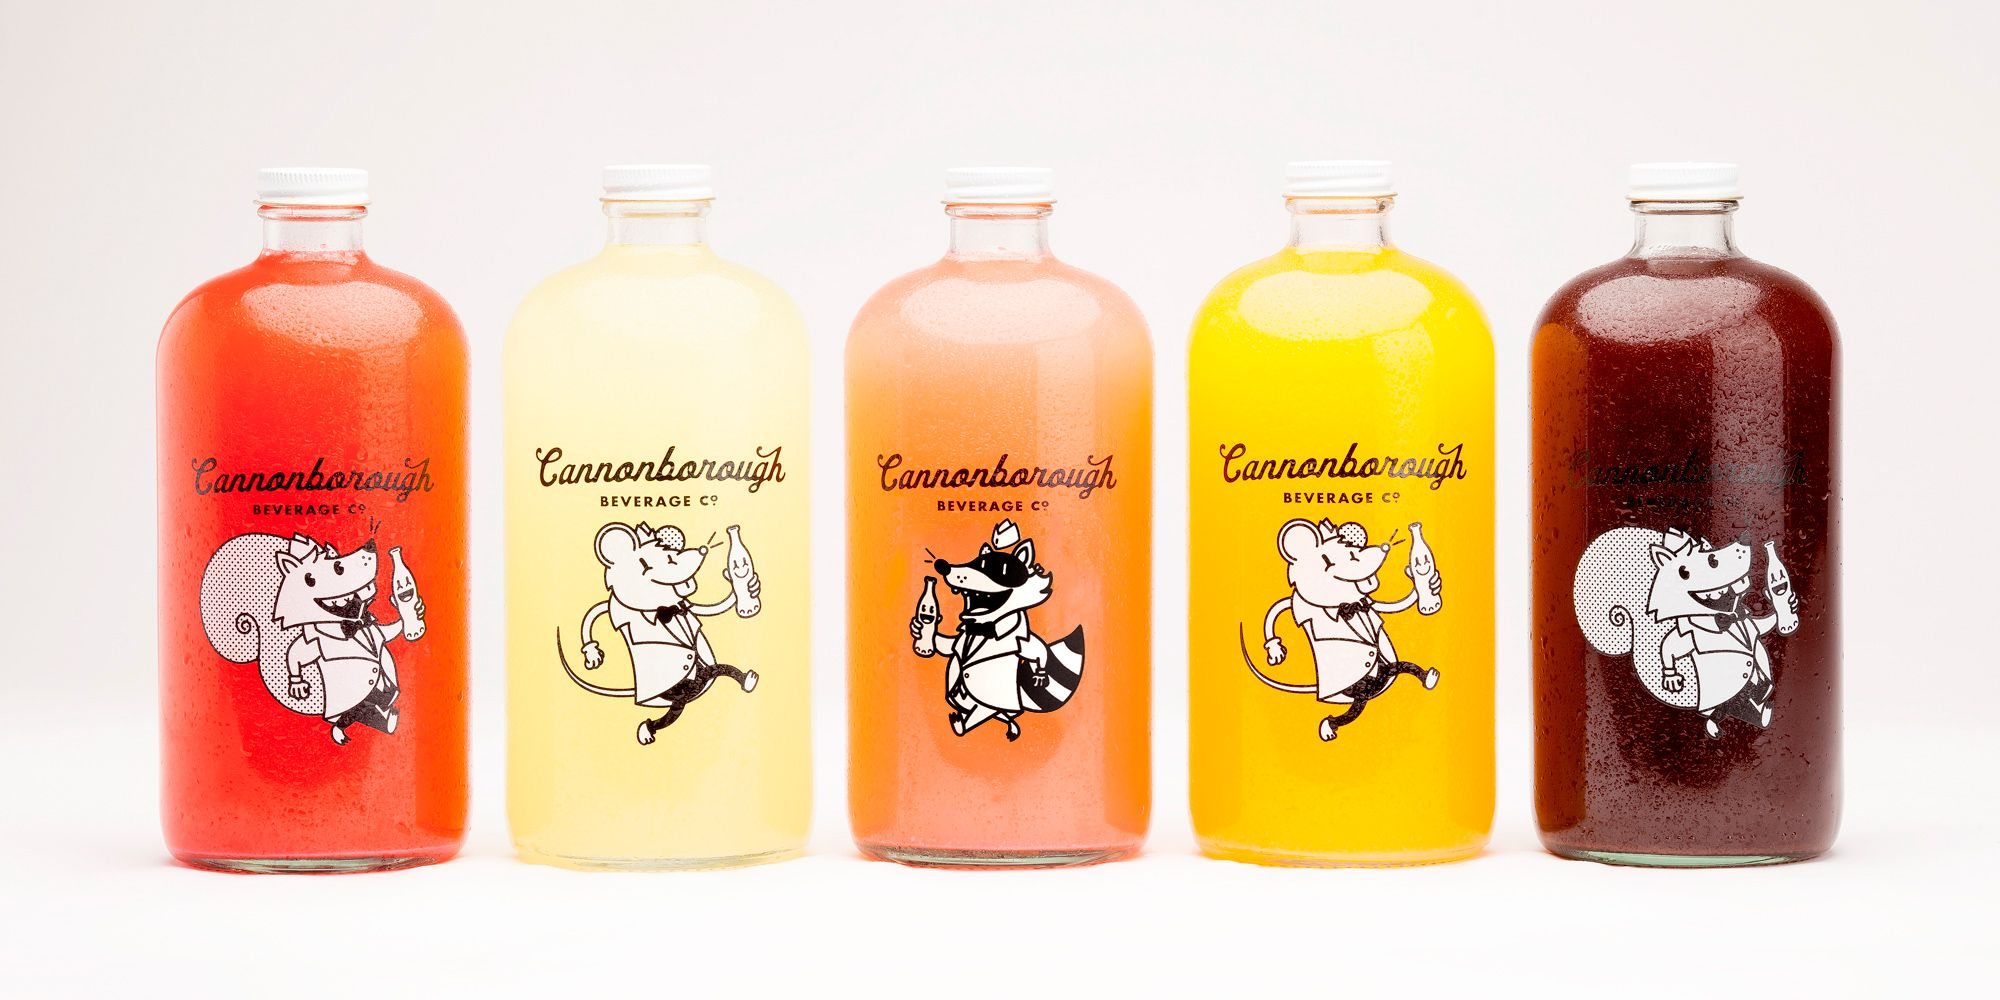 Cannonborough Beverage Co. by Fuzzco